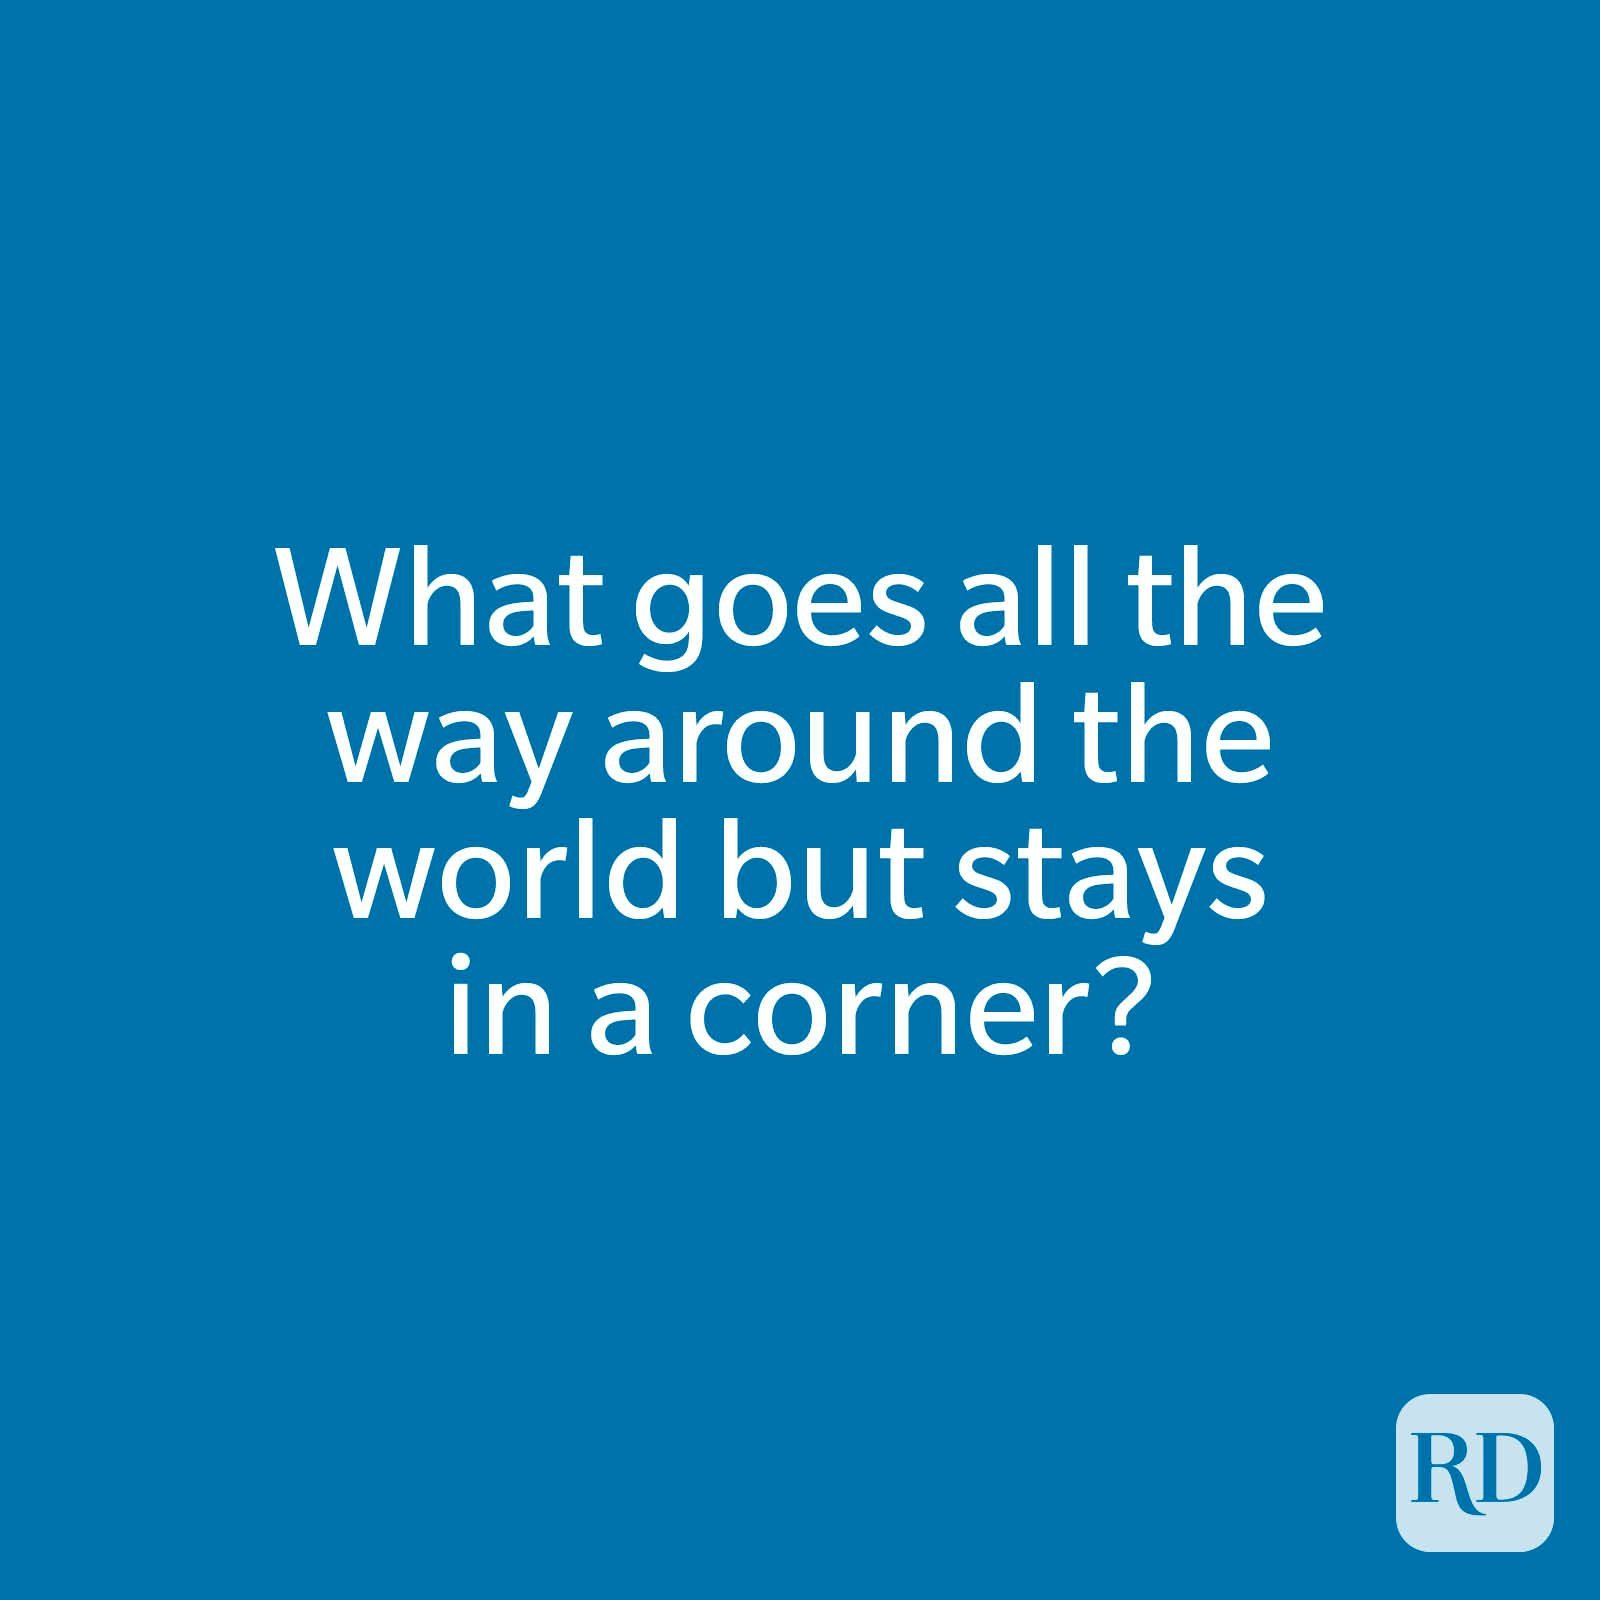 What goes all the way around the world but stays in a corner?